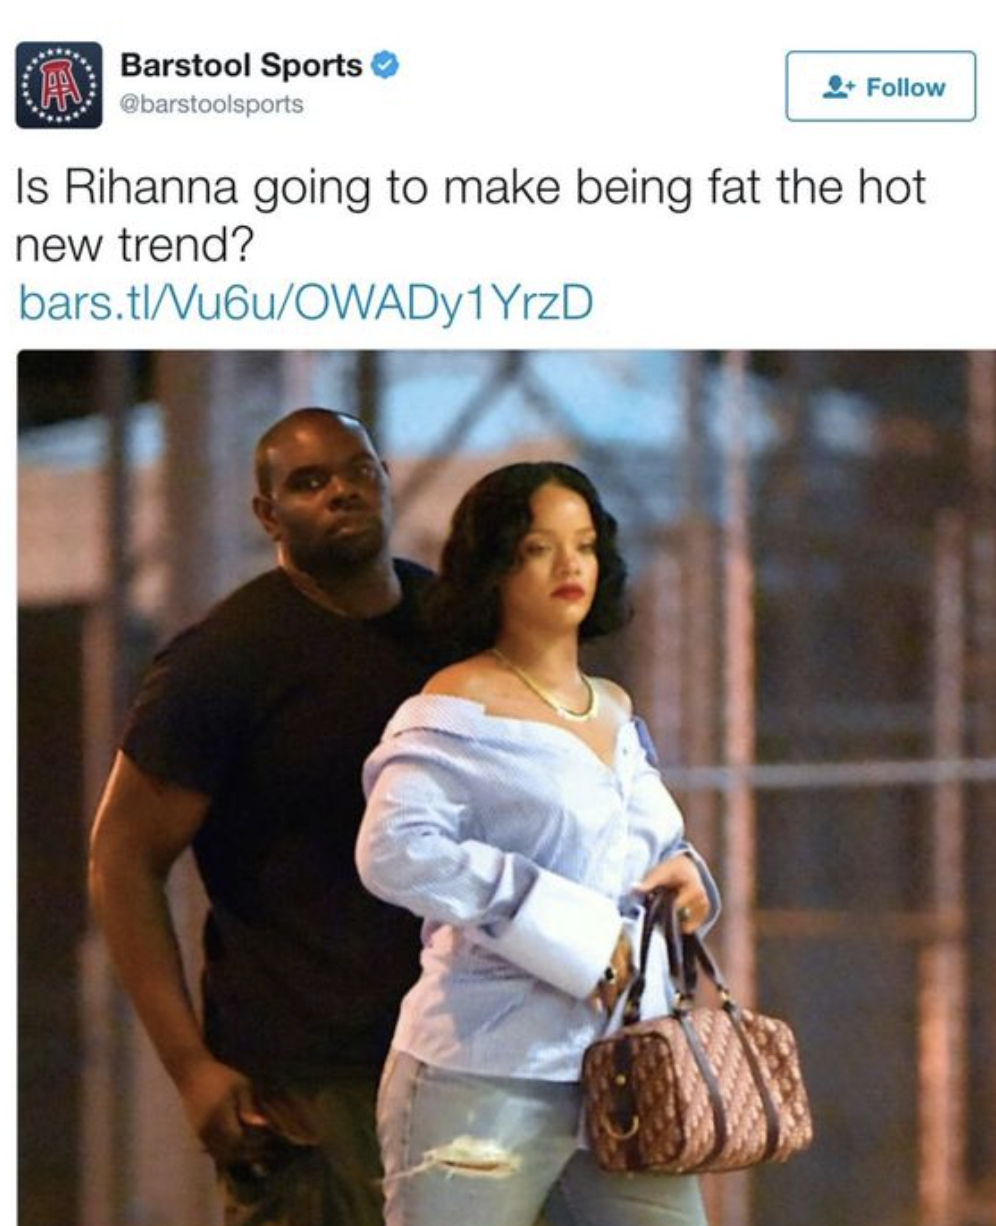 """A tweet asking, """"Is Rihanna going to make being fat the hot new trend?"""" and a picture of her walking"""